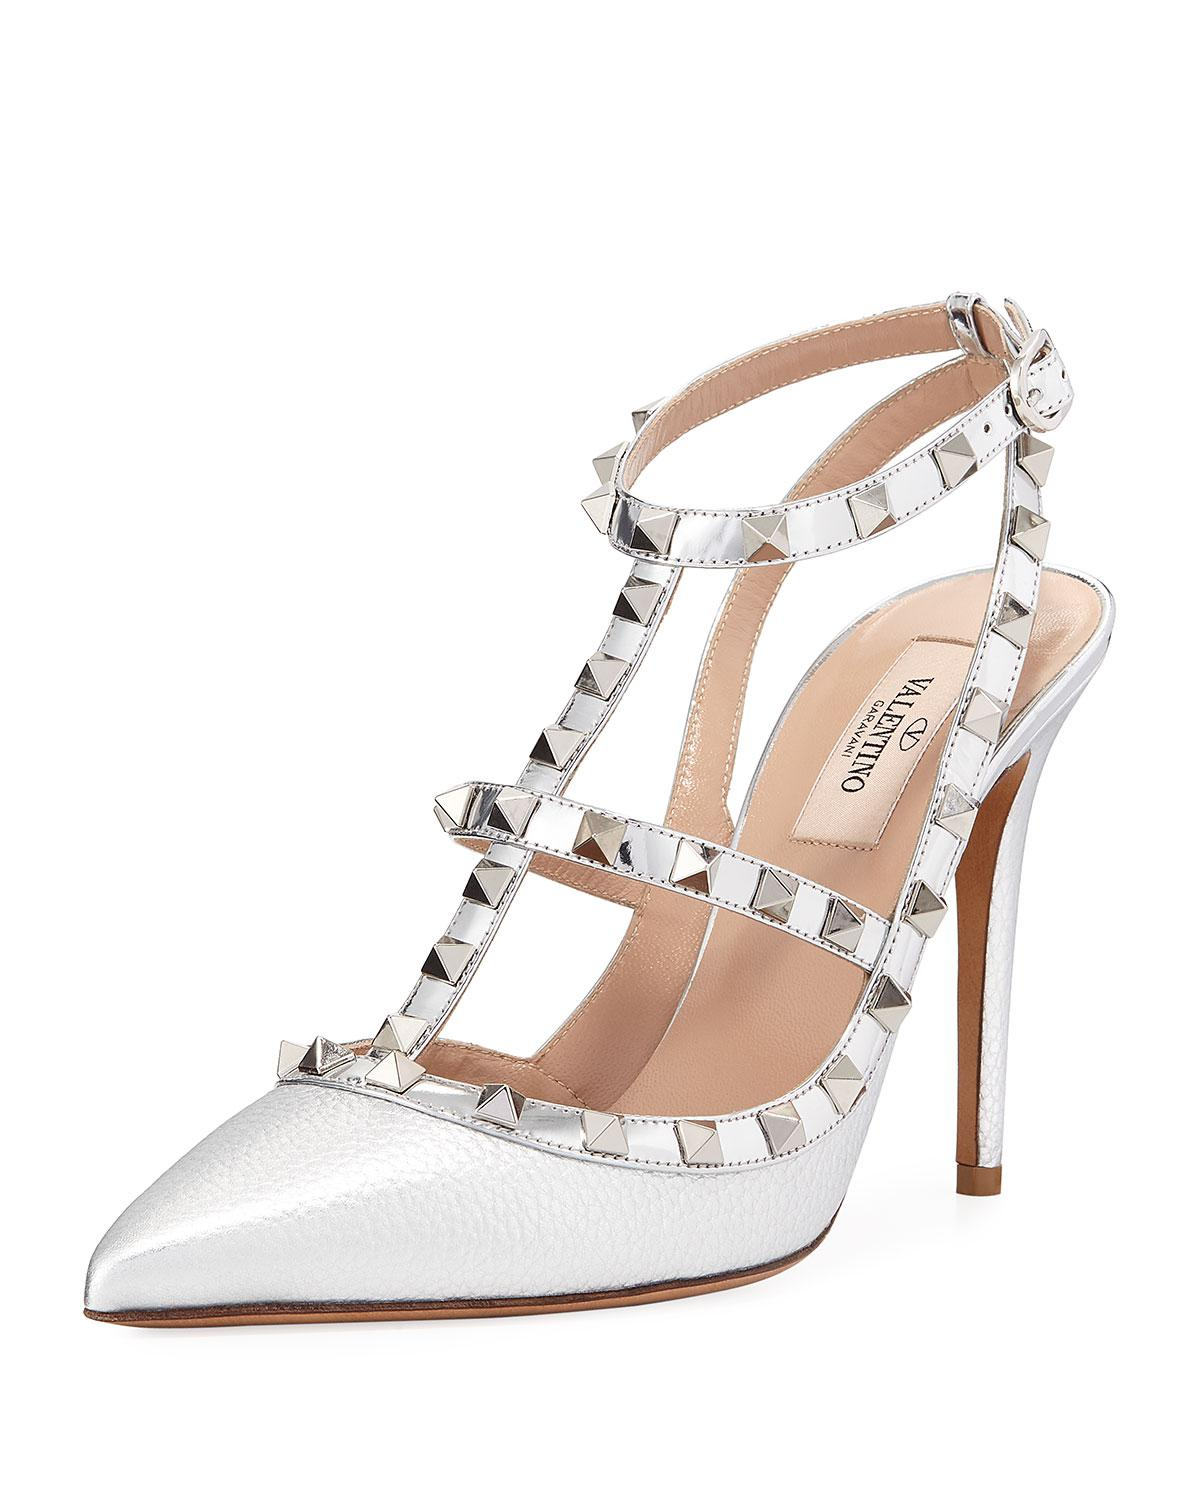 b84d50ce56 Valentino Rockstud Metallic Leather 100mm Pumps - Silvertone ...